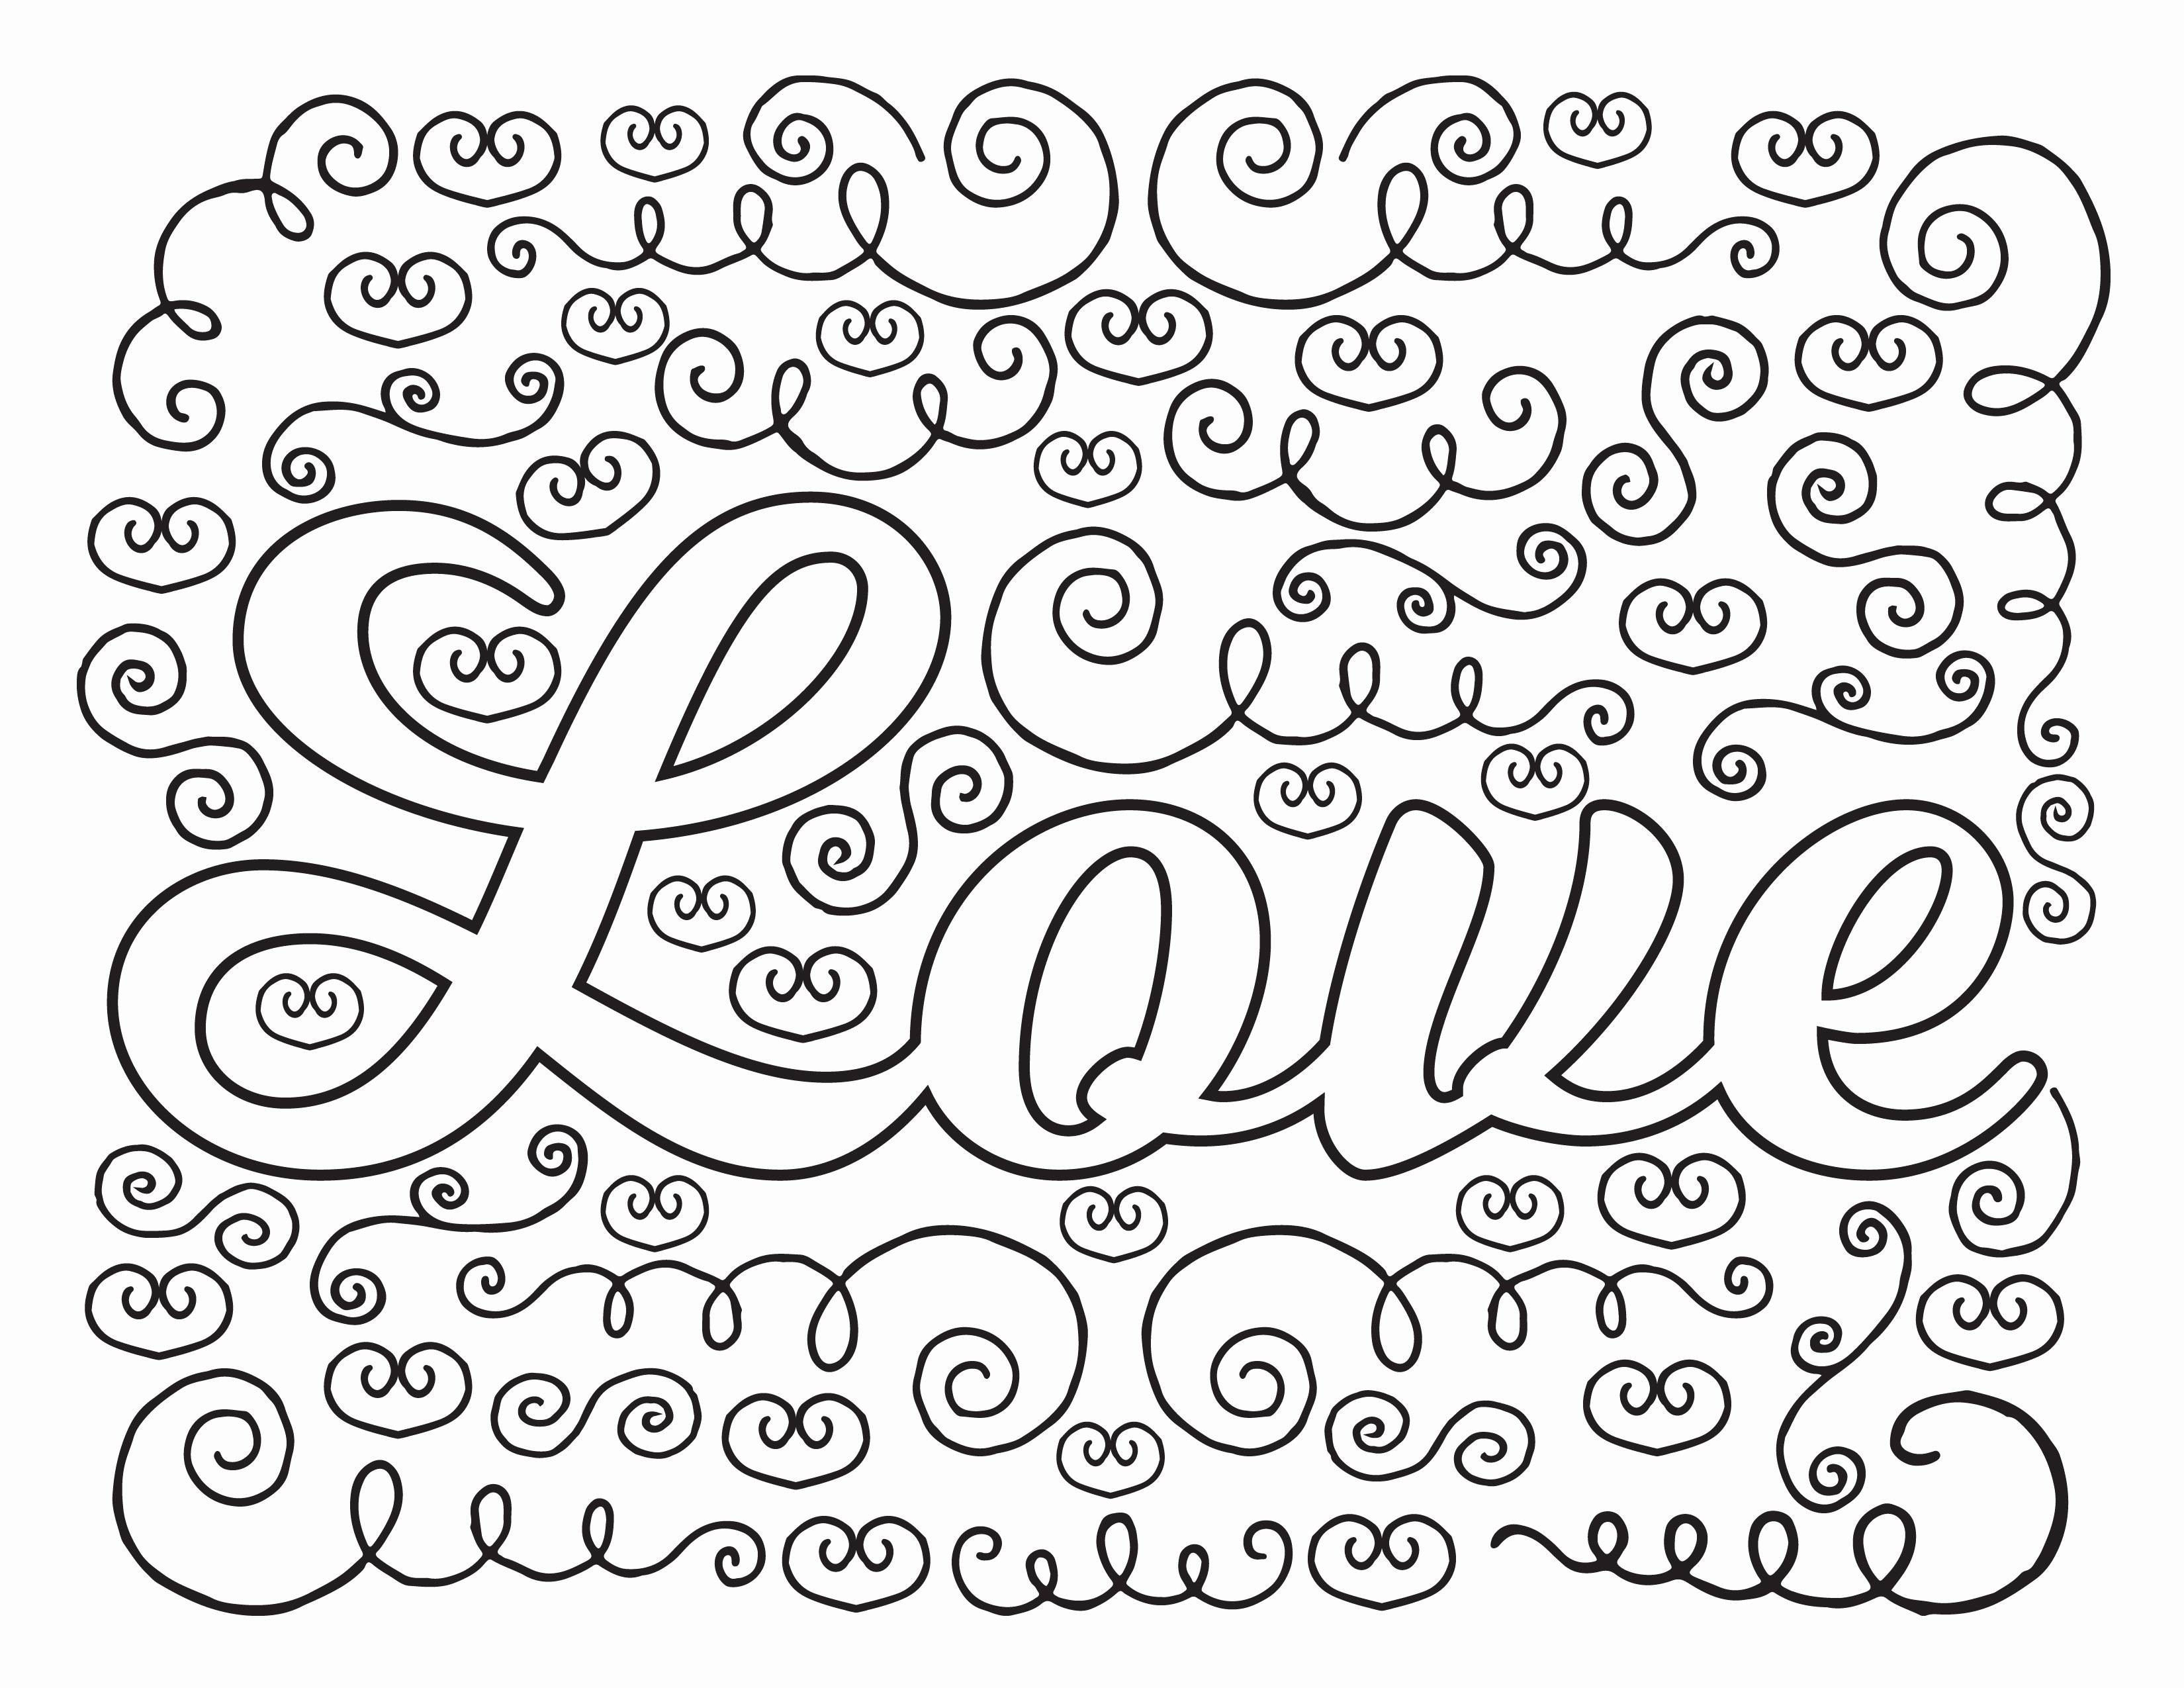 free coloring pages for girls Download-Coloring for Kids Lovely Free Printable Kids Coloring Pages Beautiful Crayola Pages 0d 13-s